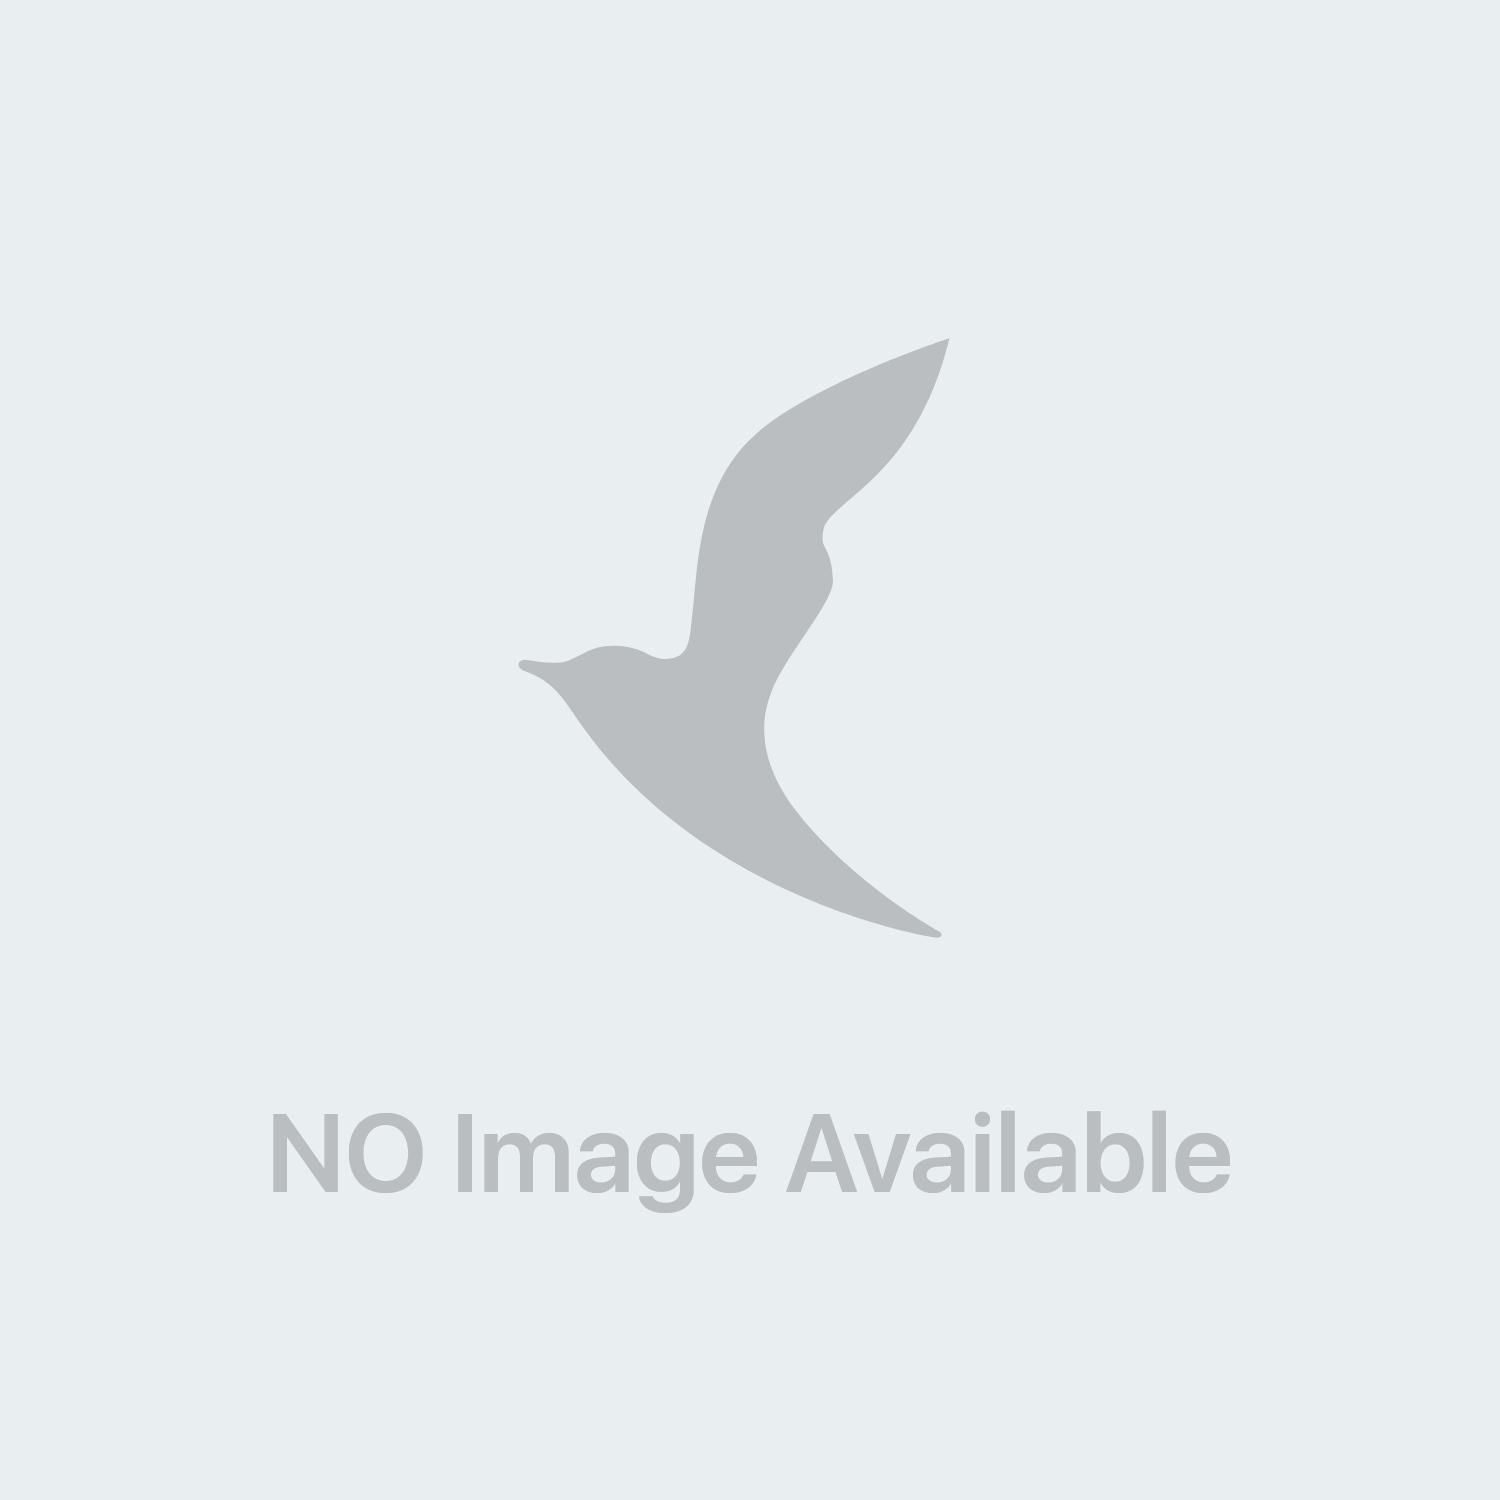 Balance Multiminerale Integratore Multiminerale 40 Compresse